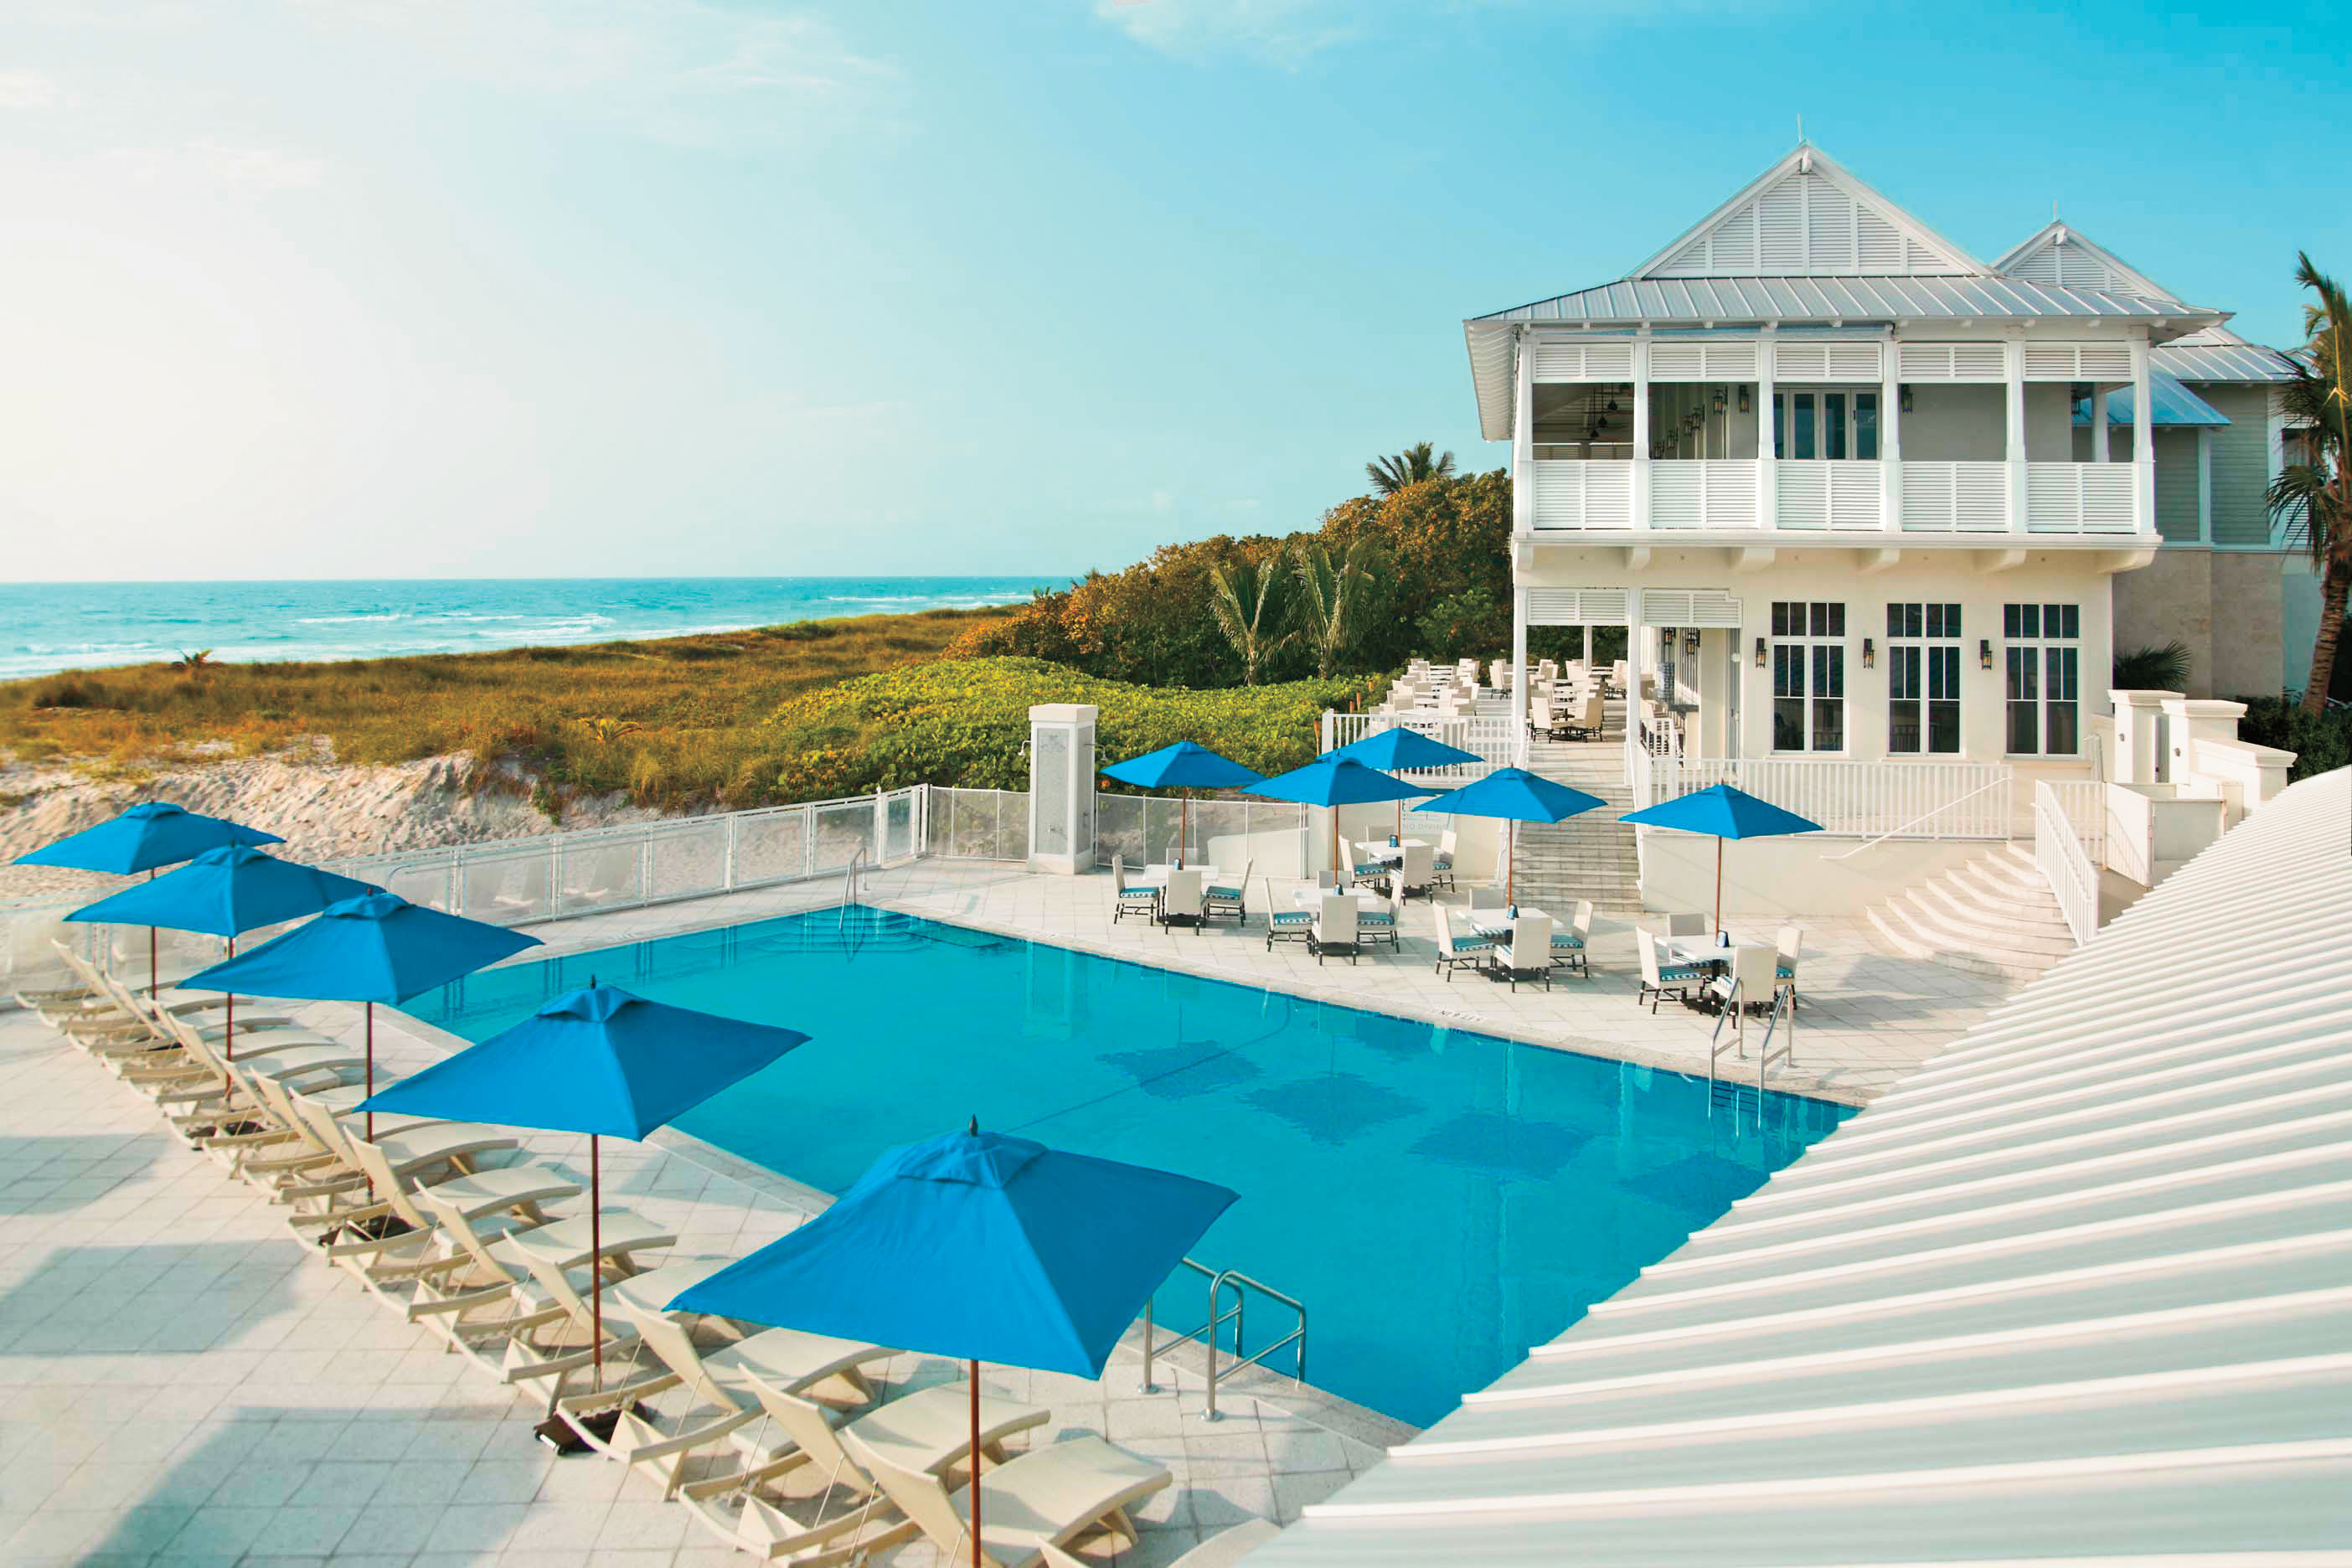 Best Beach Stay: The Seagate Hotel & Spa